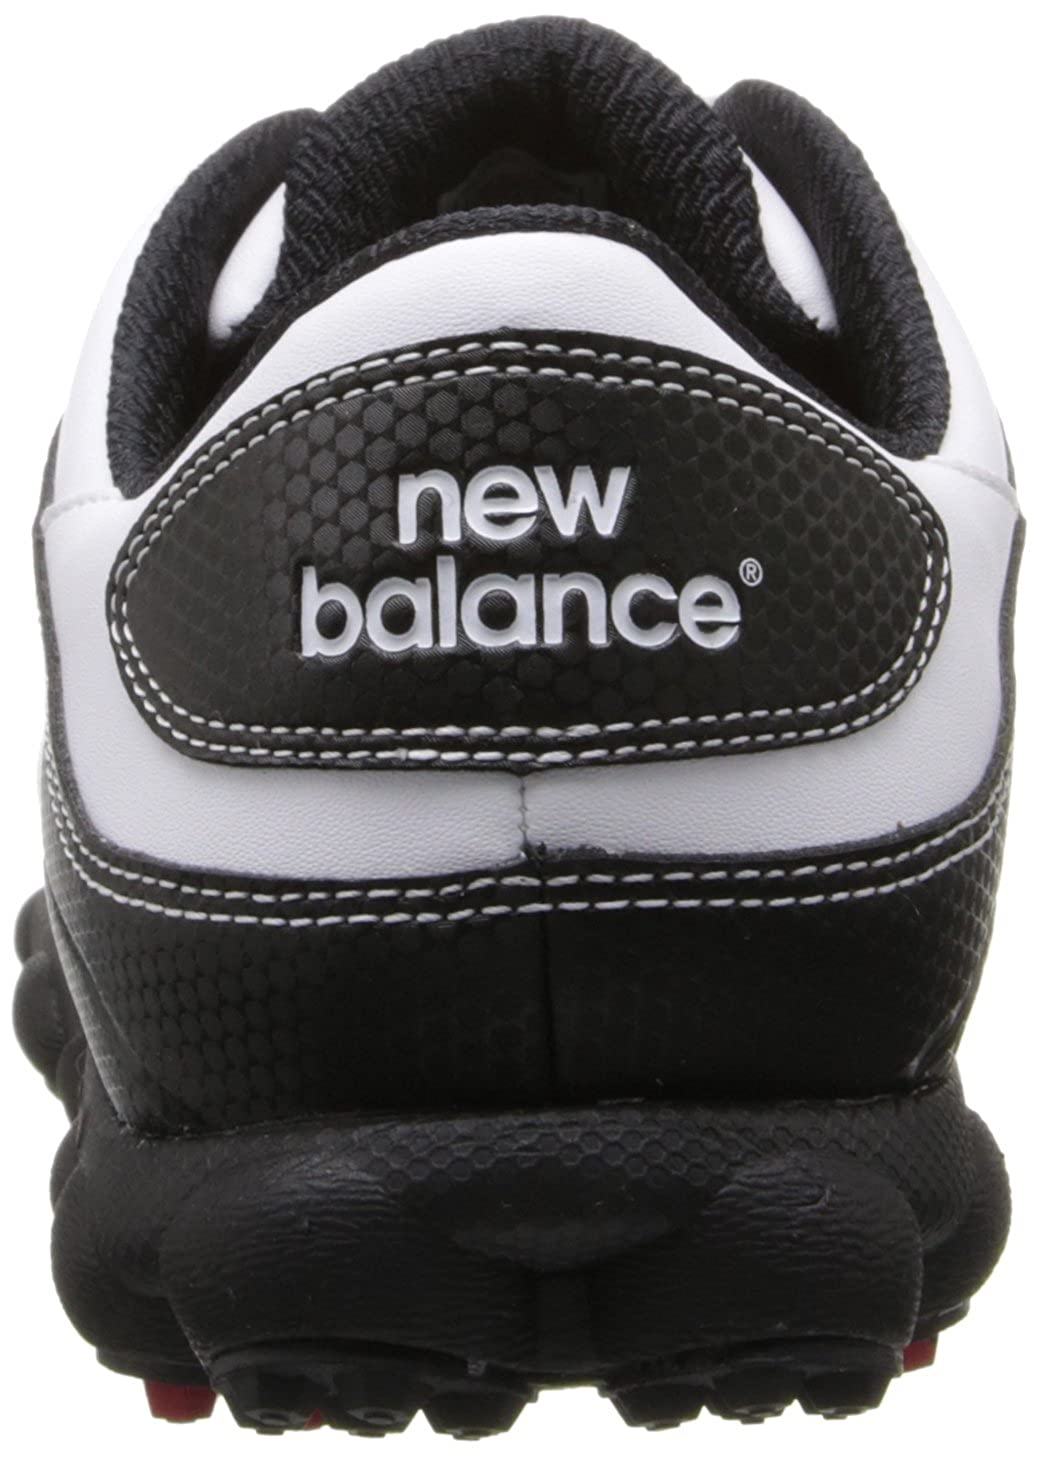 New Balance 574LX Golf Shoe: Light footed Luxury